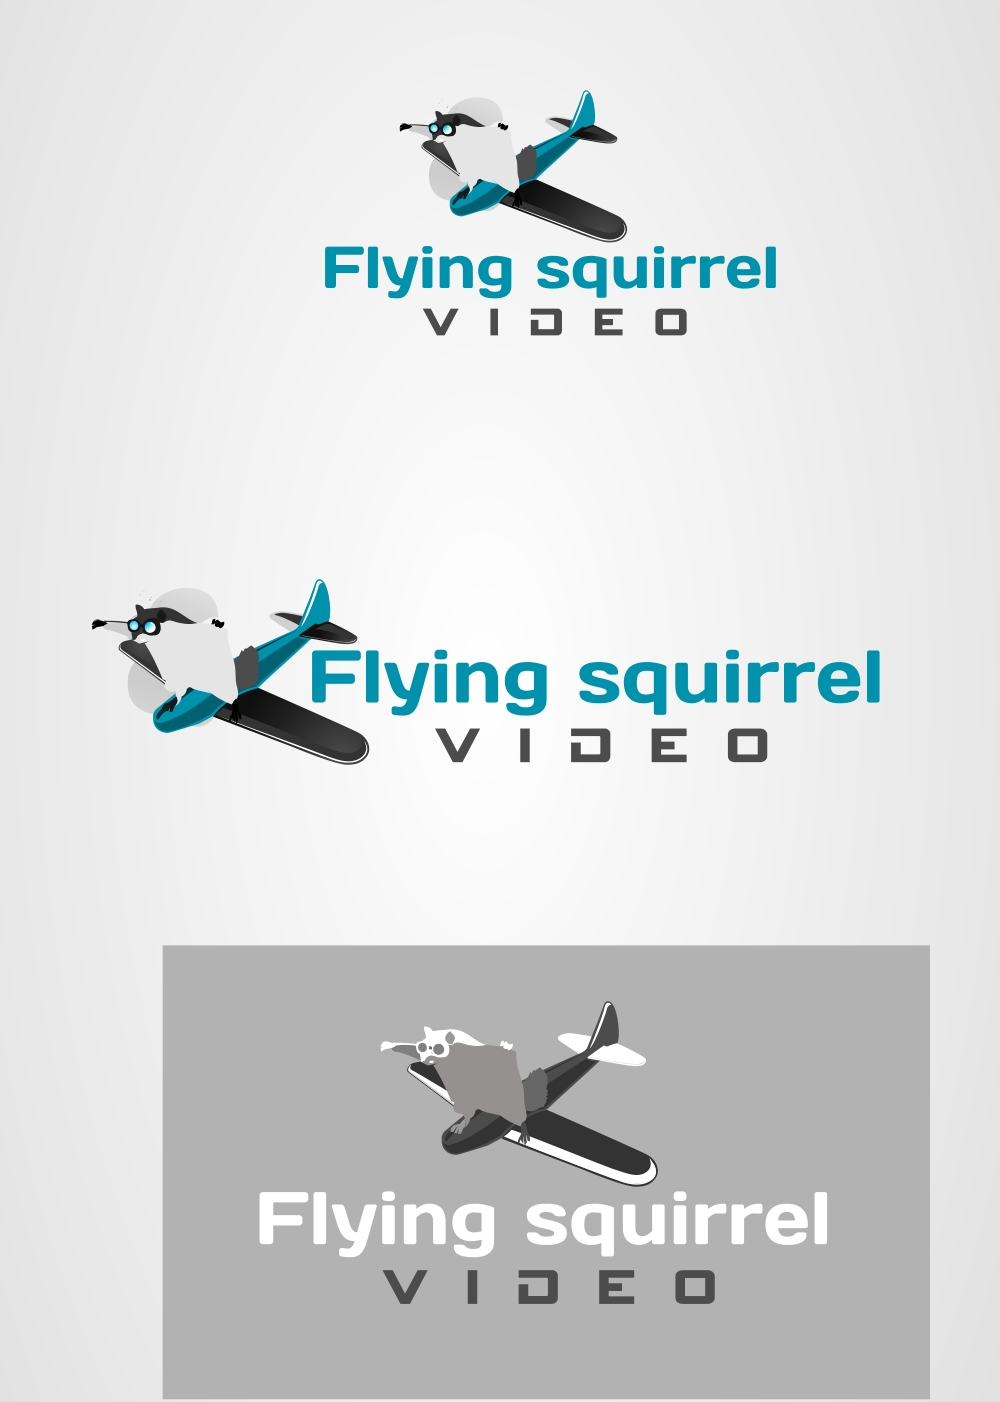 Logo Design by Private User - Entry No. 25 in the Logo Design Contest Artistic Logo Design for Flying squirrel video.